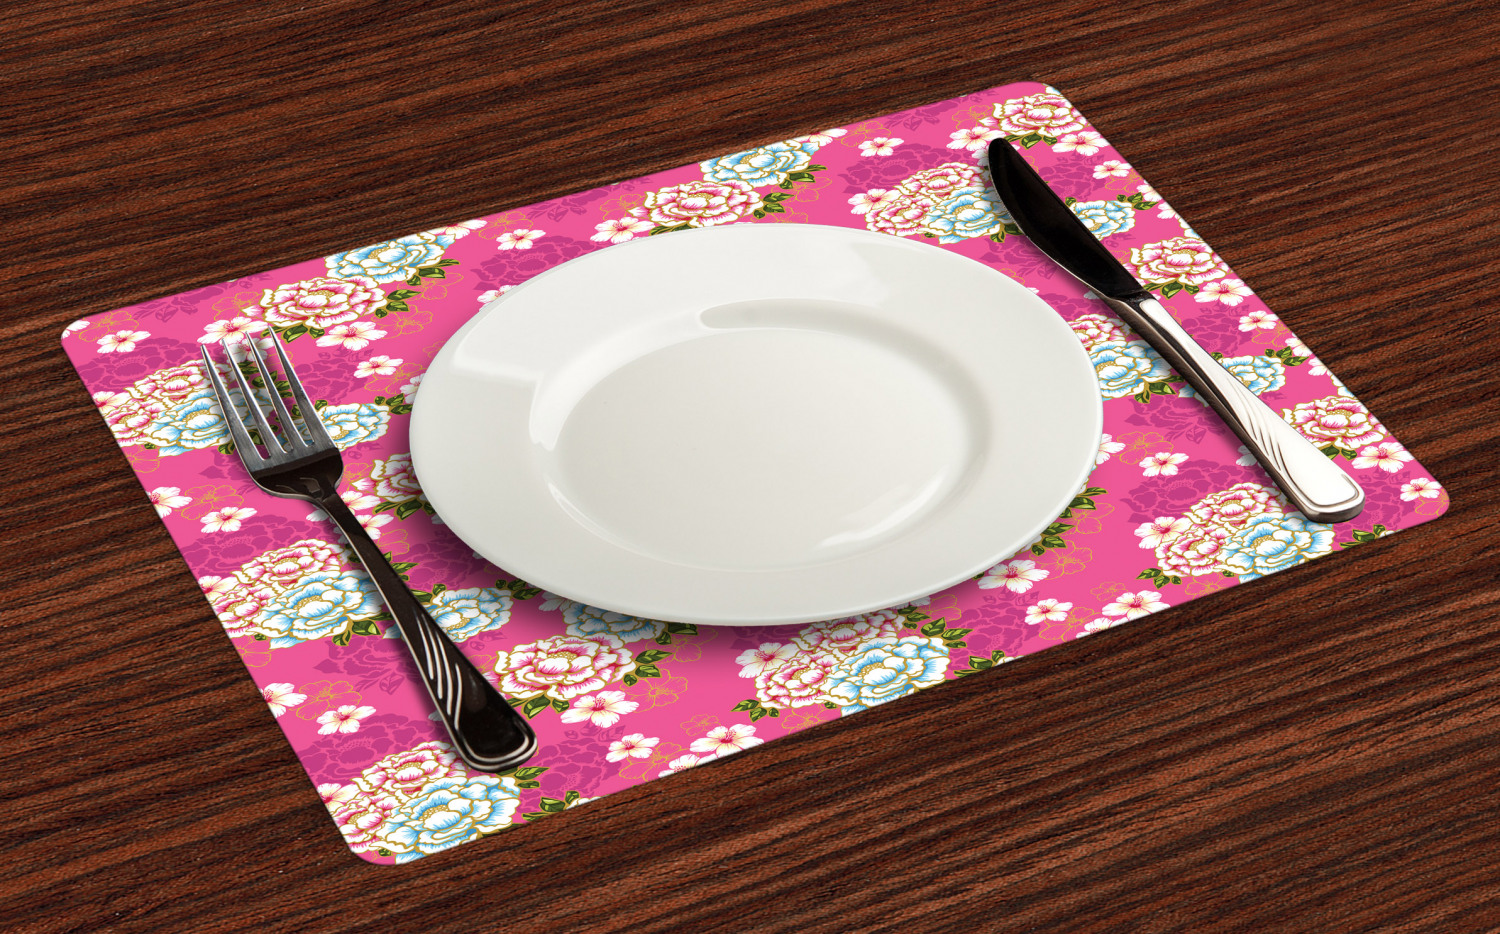 Ambesonne-Flower-Pattern-Placemat-Set-of-4-Fabric-Place-Mats-for-Table-Decor thumbnail 221